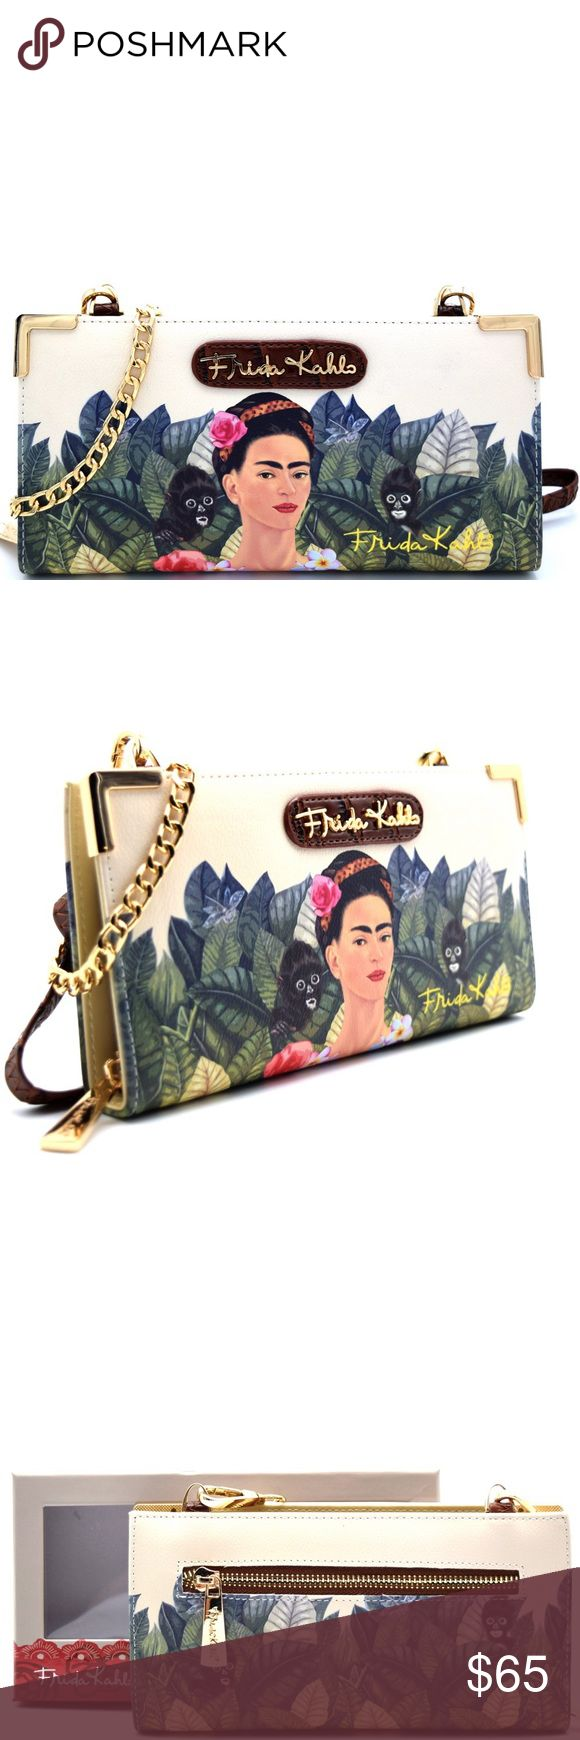 Black Frida Kahlo wallet with crossbody strap Please see pictures and if you have any more questions, let me know. Thank you 🌺 Frida Kahlo Bags Wallets